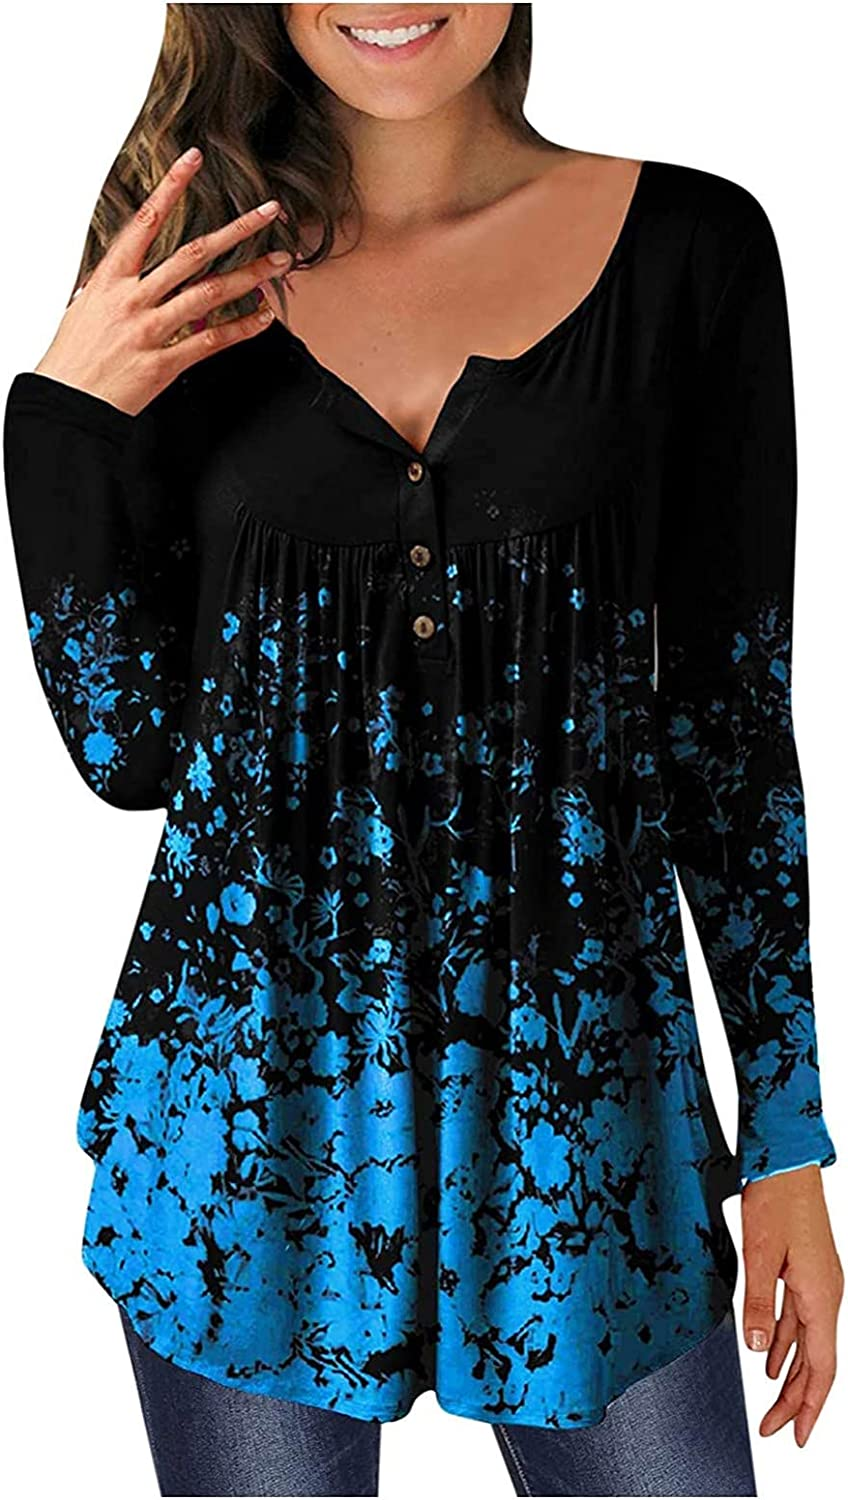 Comfy Casual Tunic Tops for Women Solid Floral Scoop Neck Blouse Loose Pleated Scalloped Hem Pullover Shirts